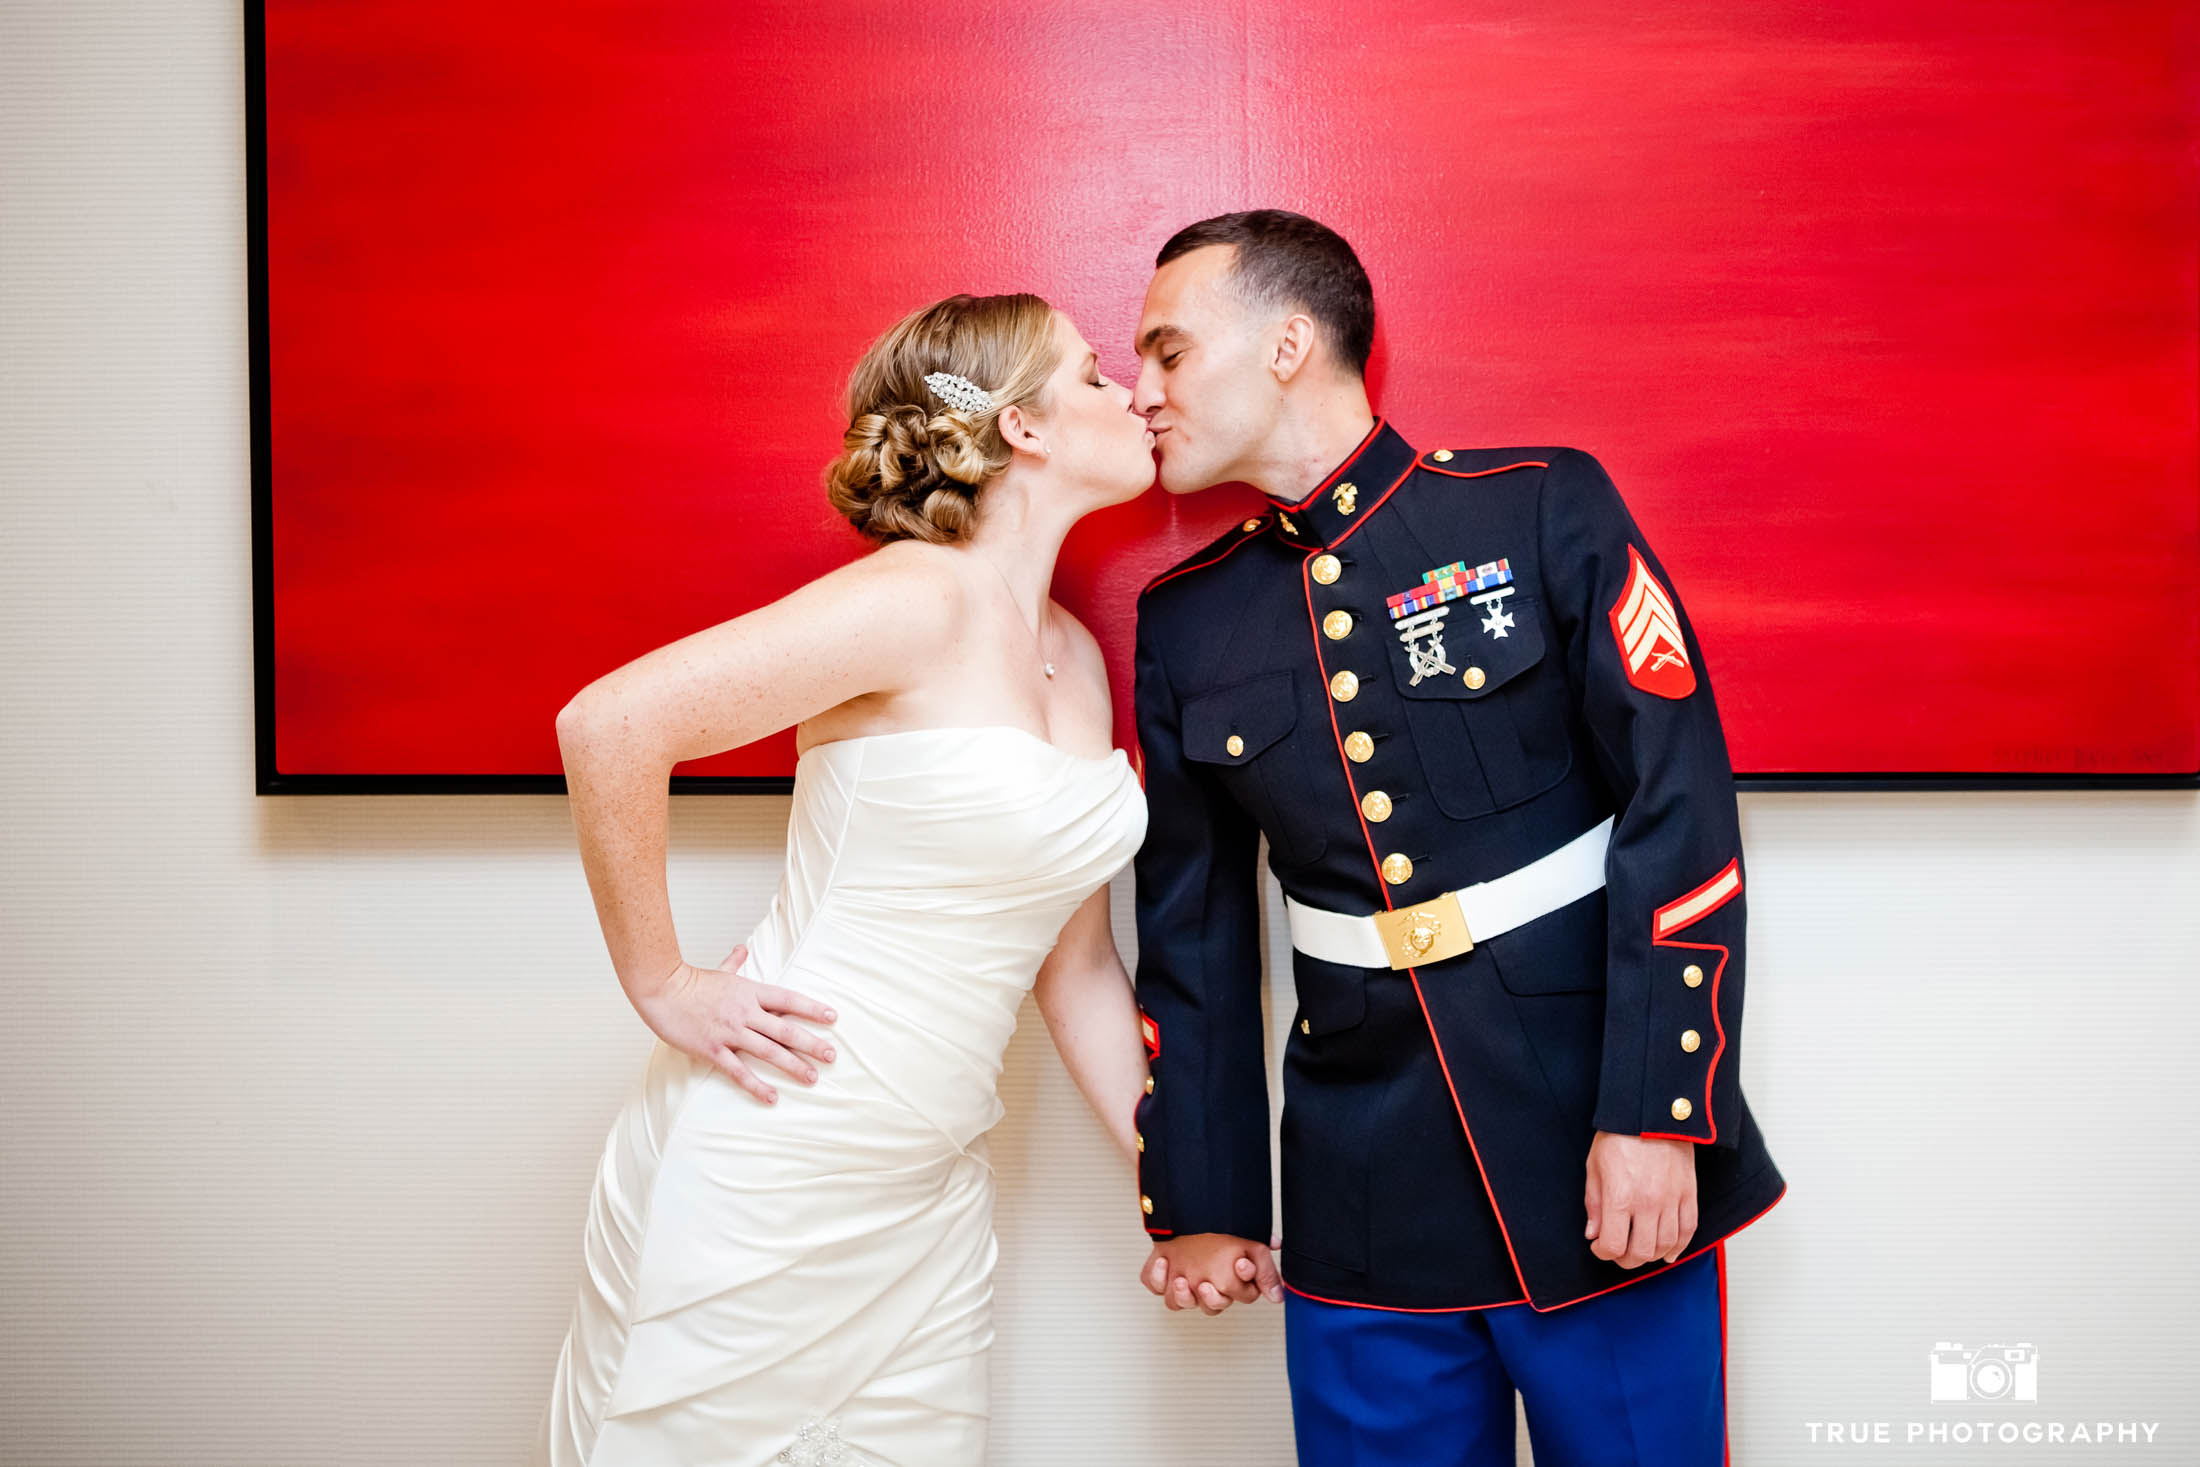 Military Groom and Bride hold hands and lean in for kiss by red painting